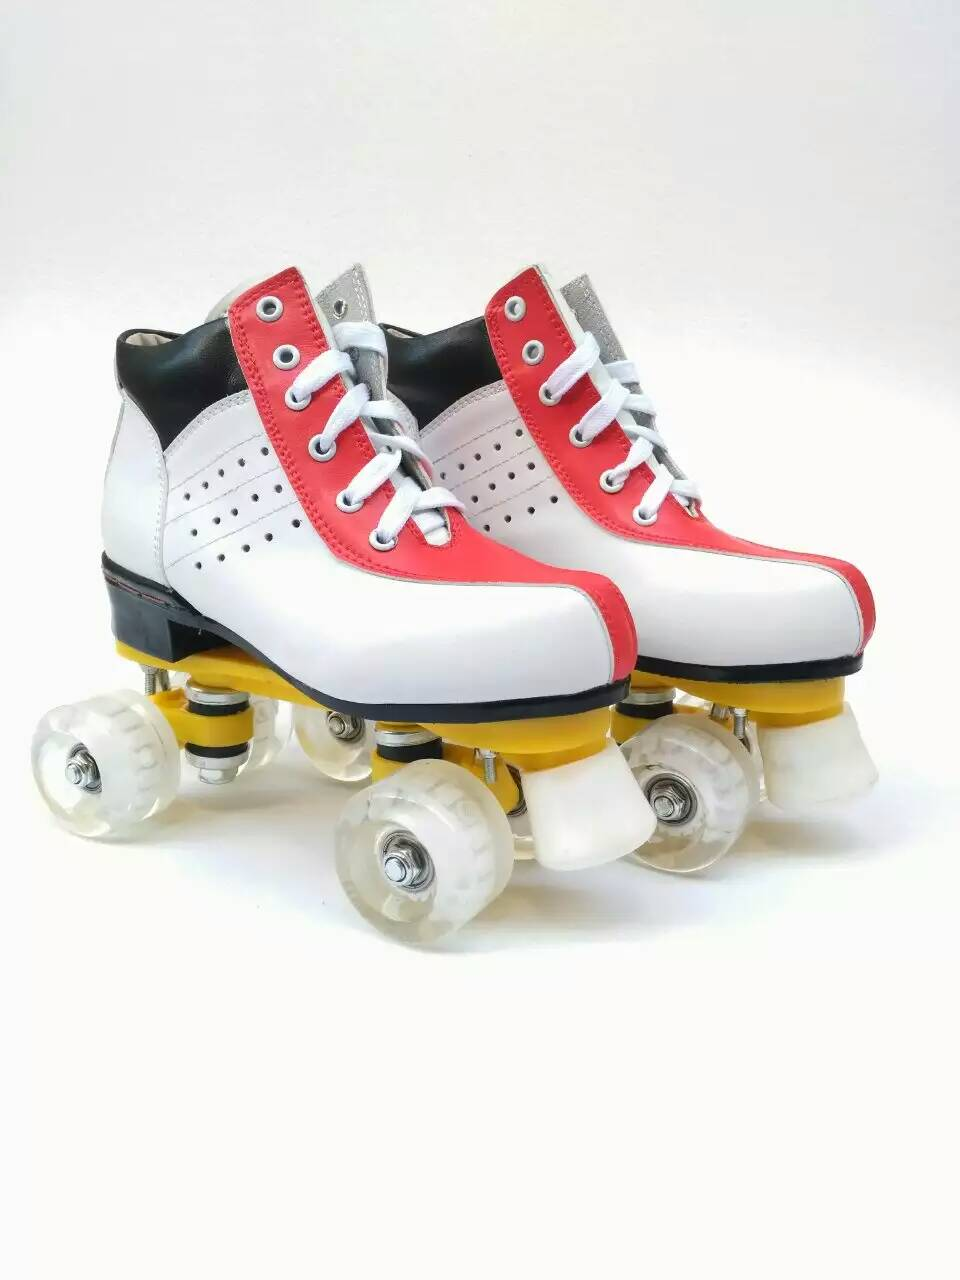 2017 New style arrival Wholesale Price 4 Wheel Speed Roller Skates Shoes free shipping